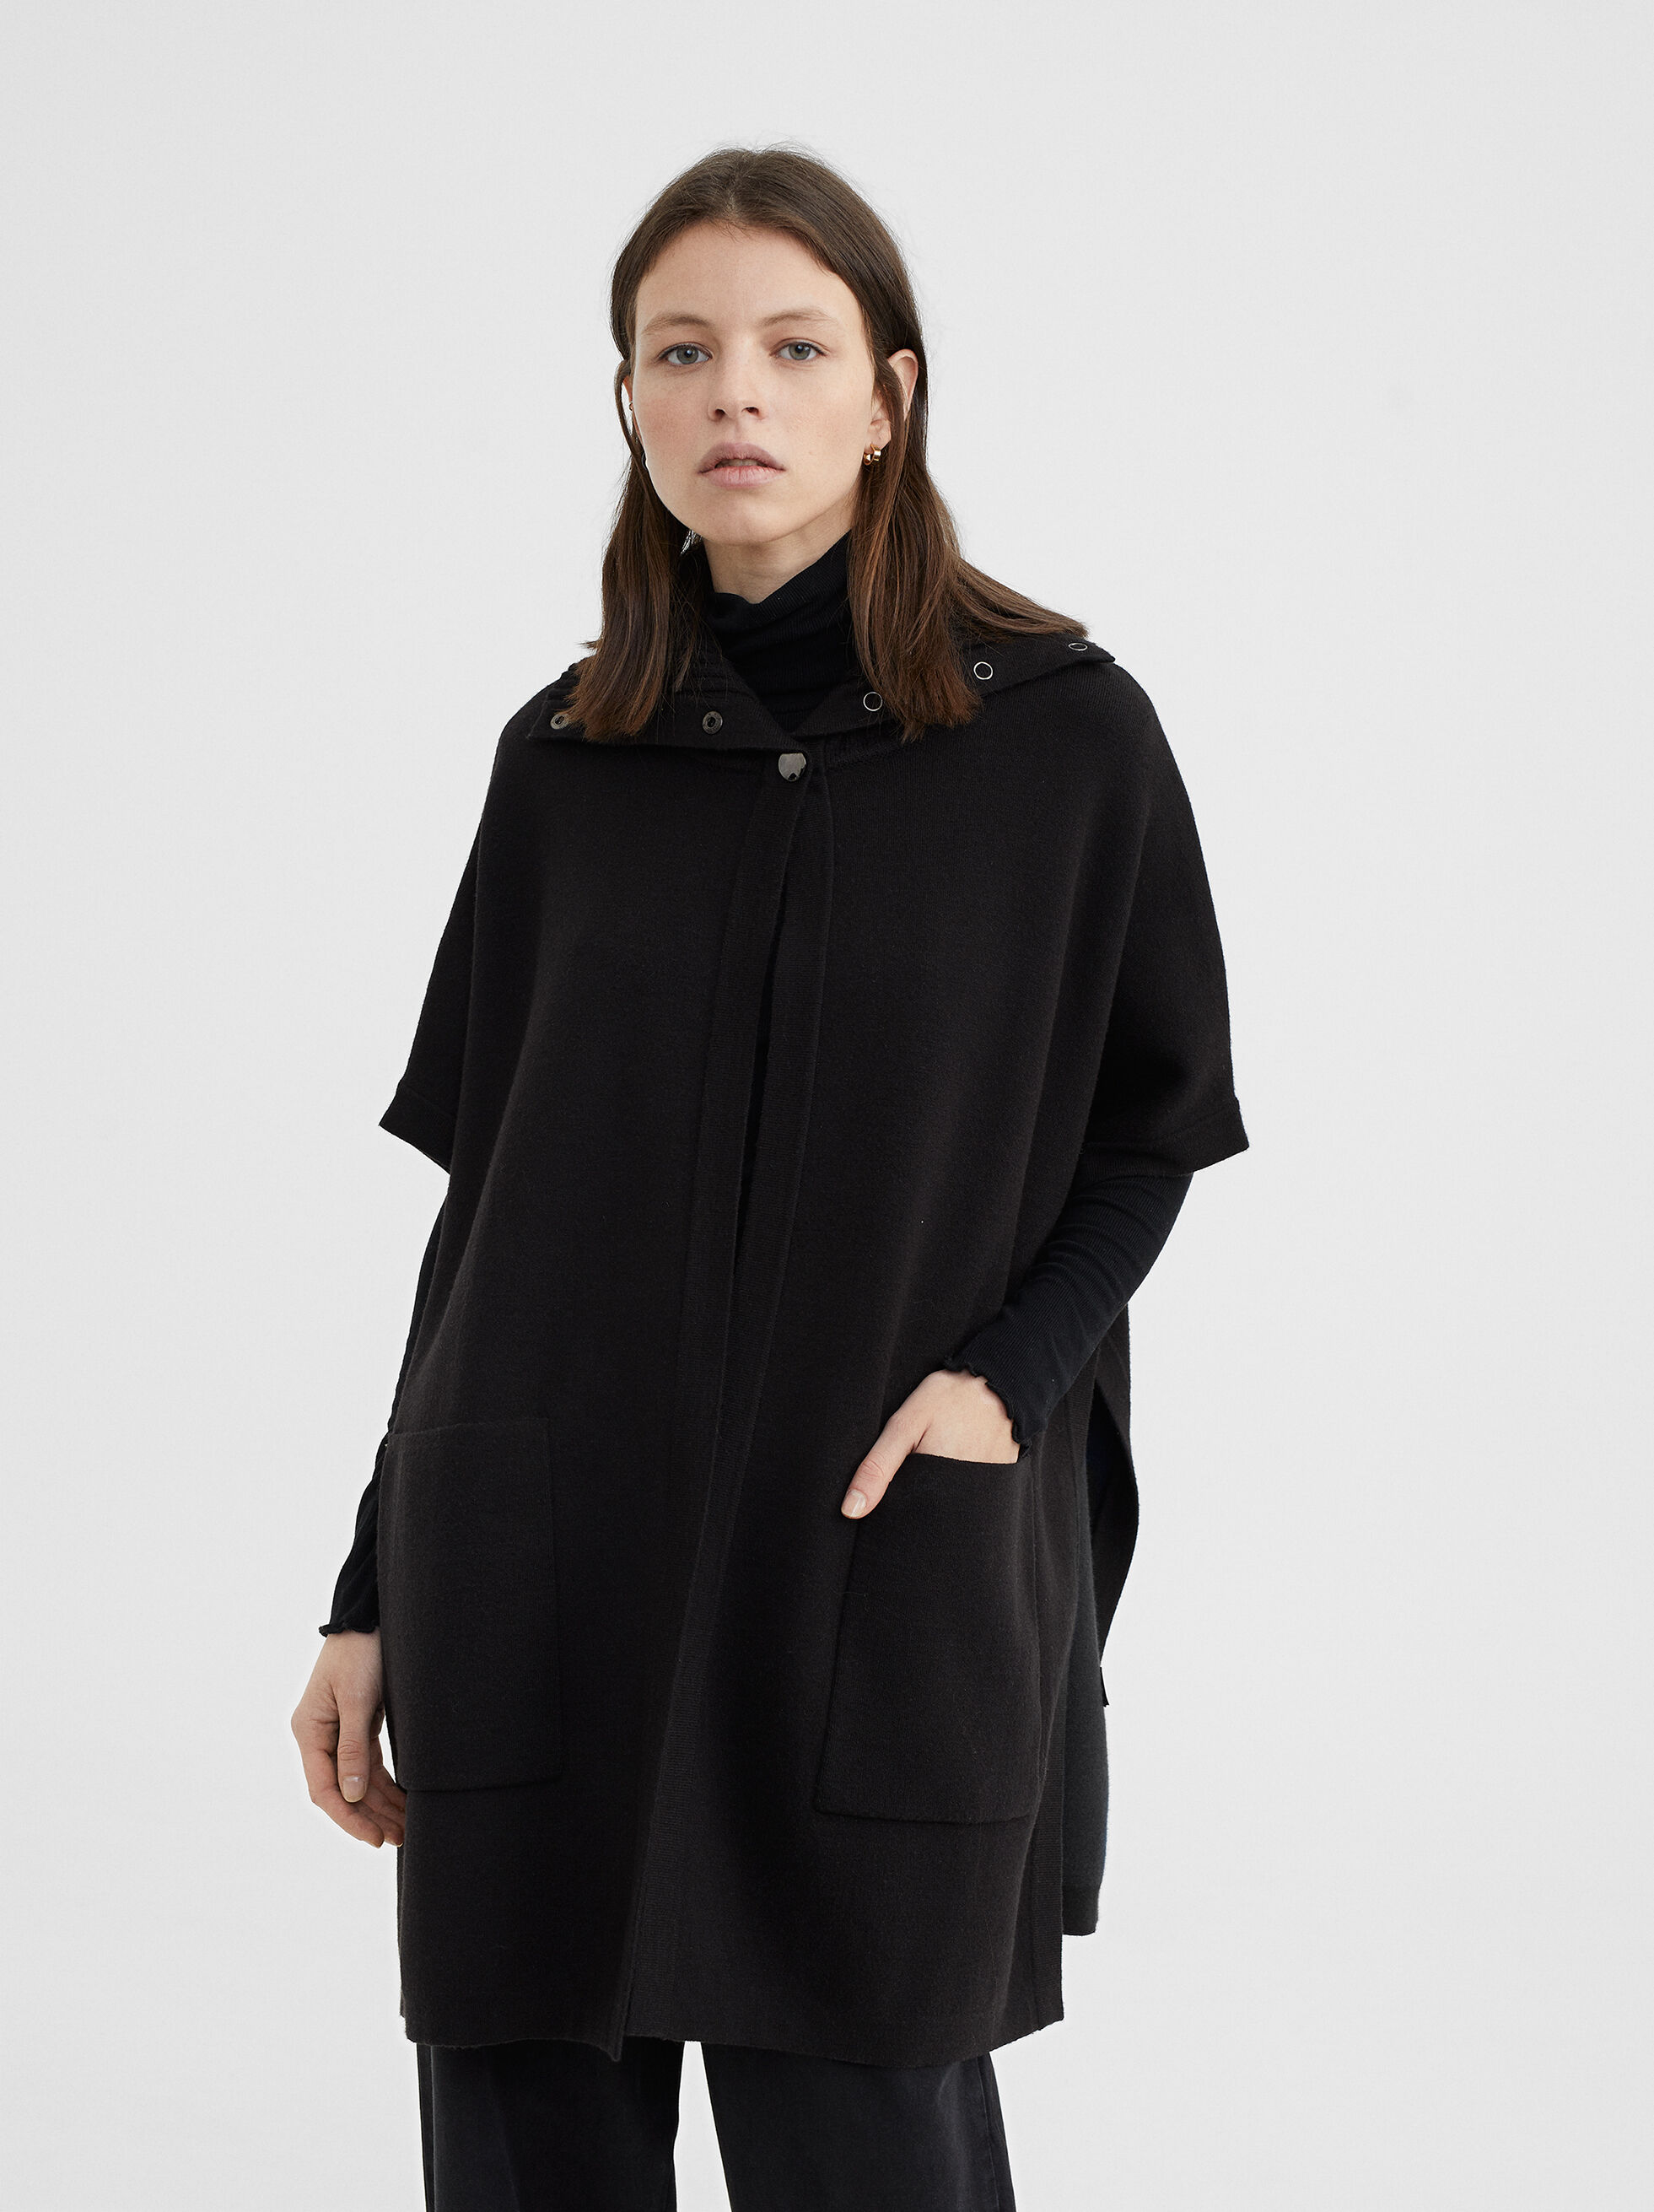 Knit Poncho, Black, hi-res